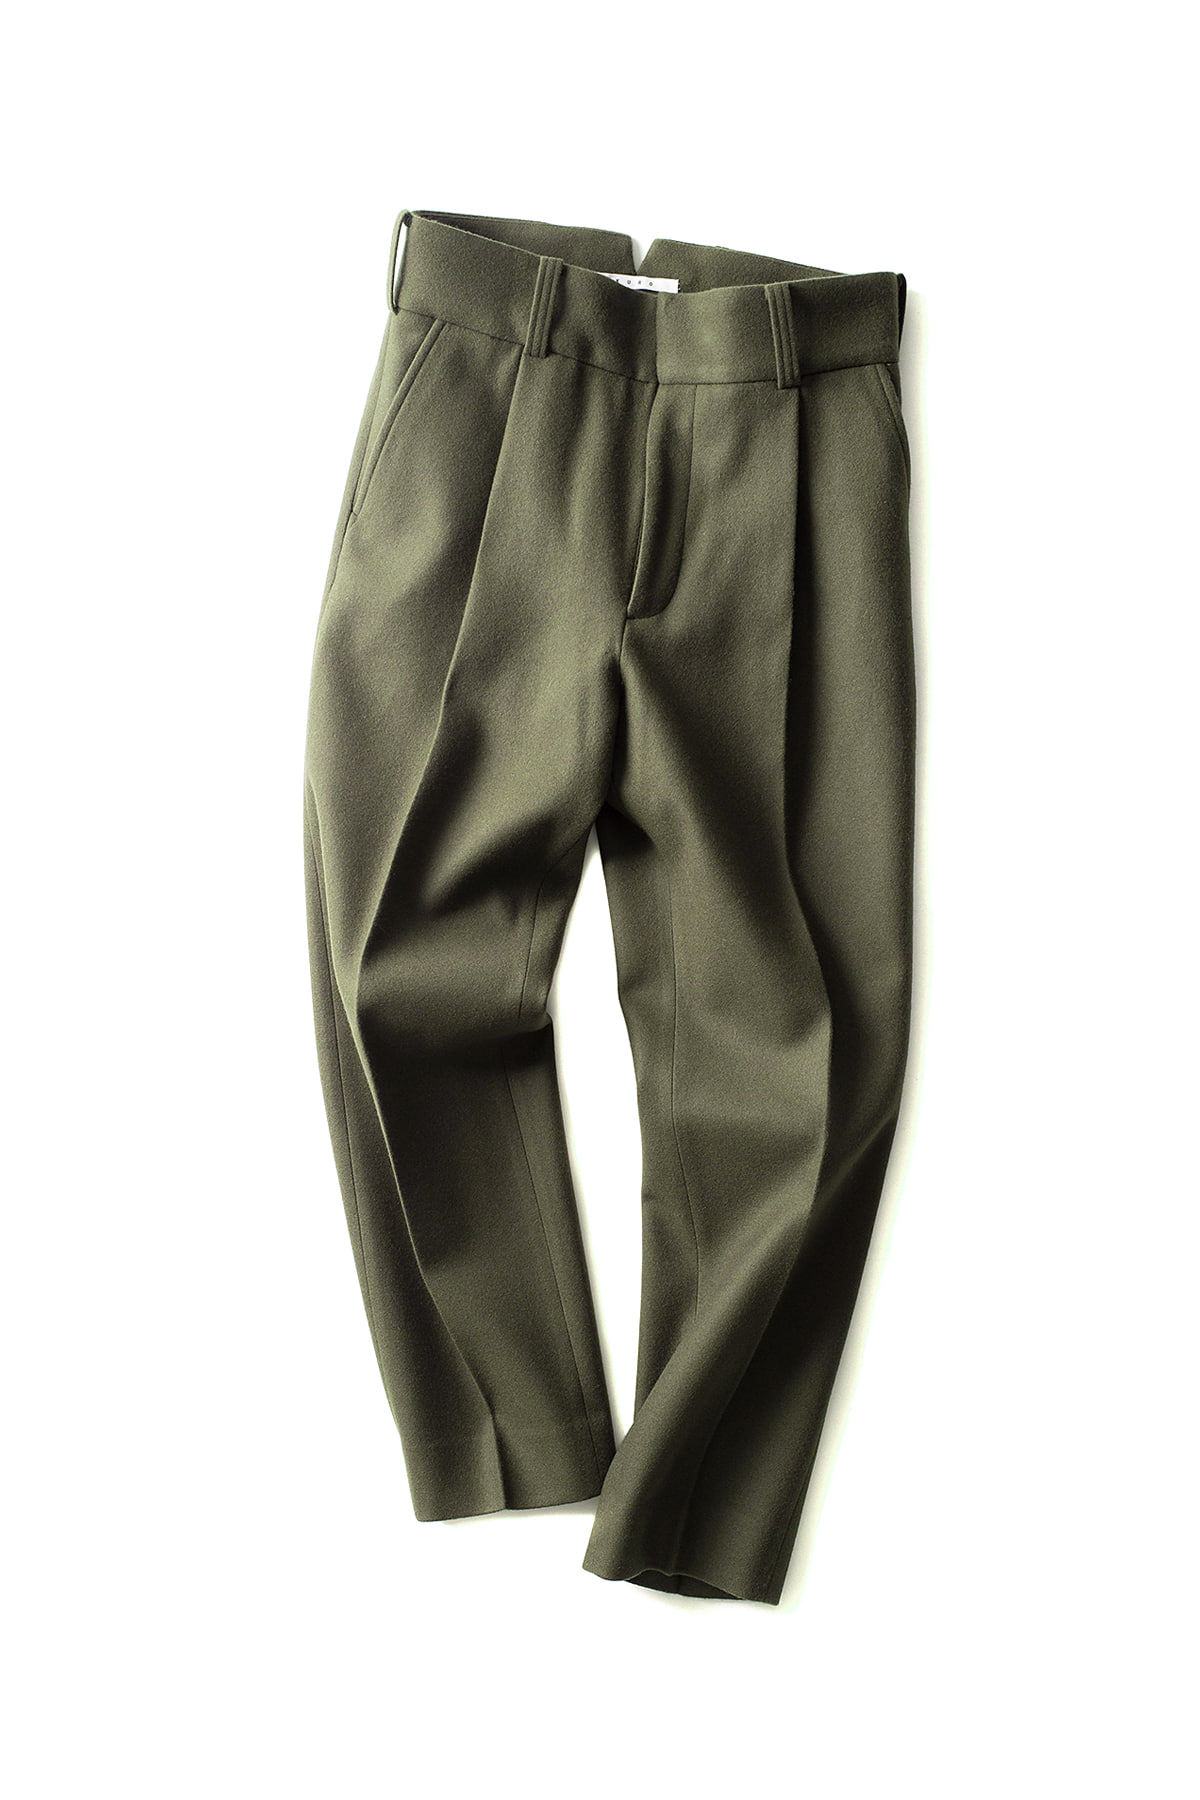 KURO : One Tuck Tapered Trouser (Khaki)